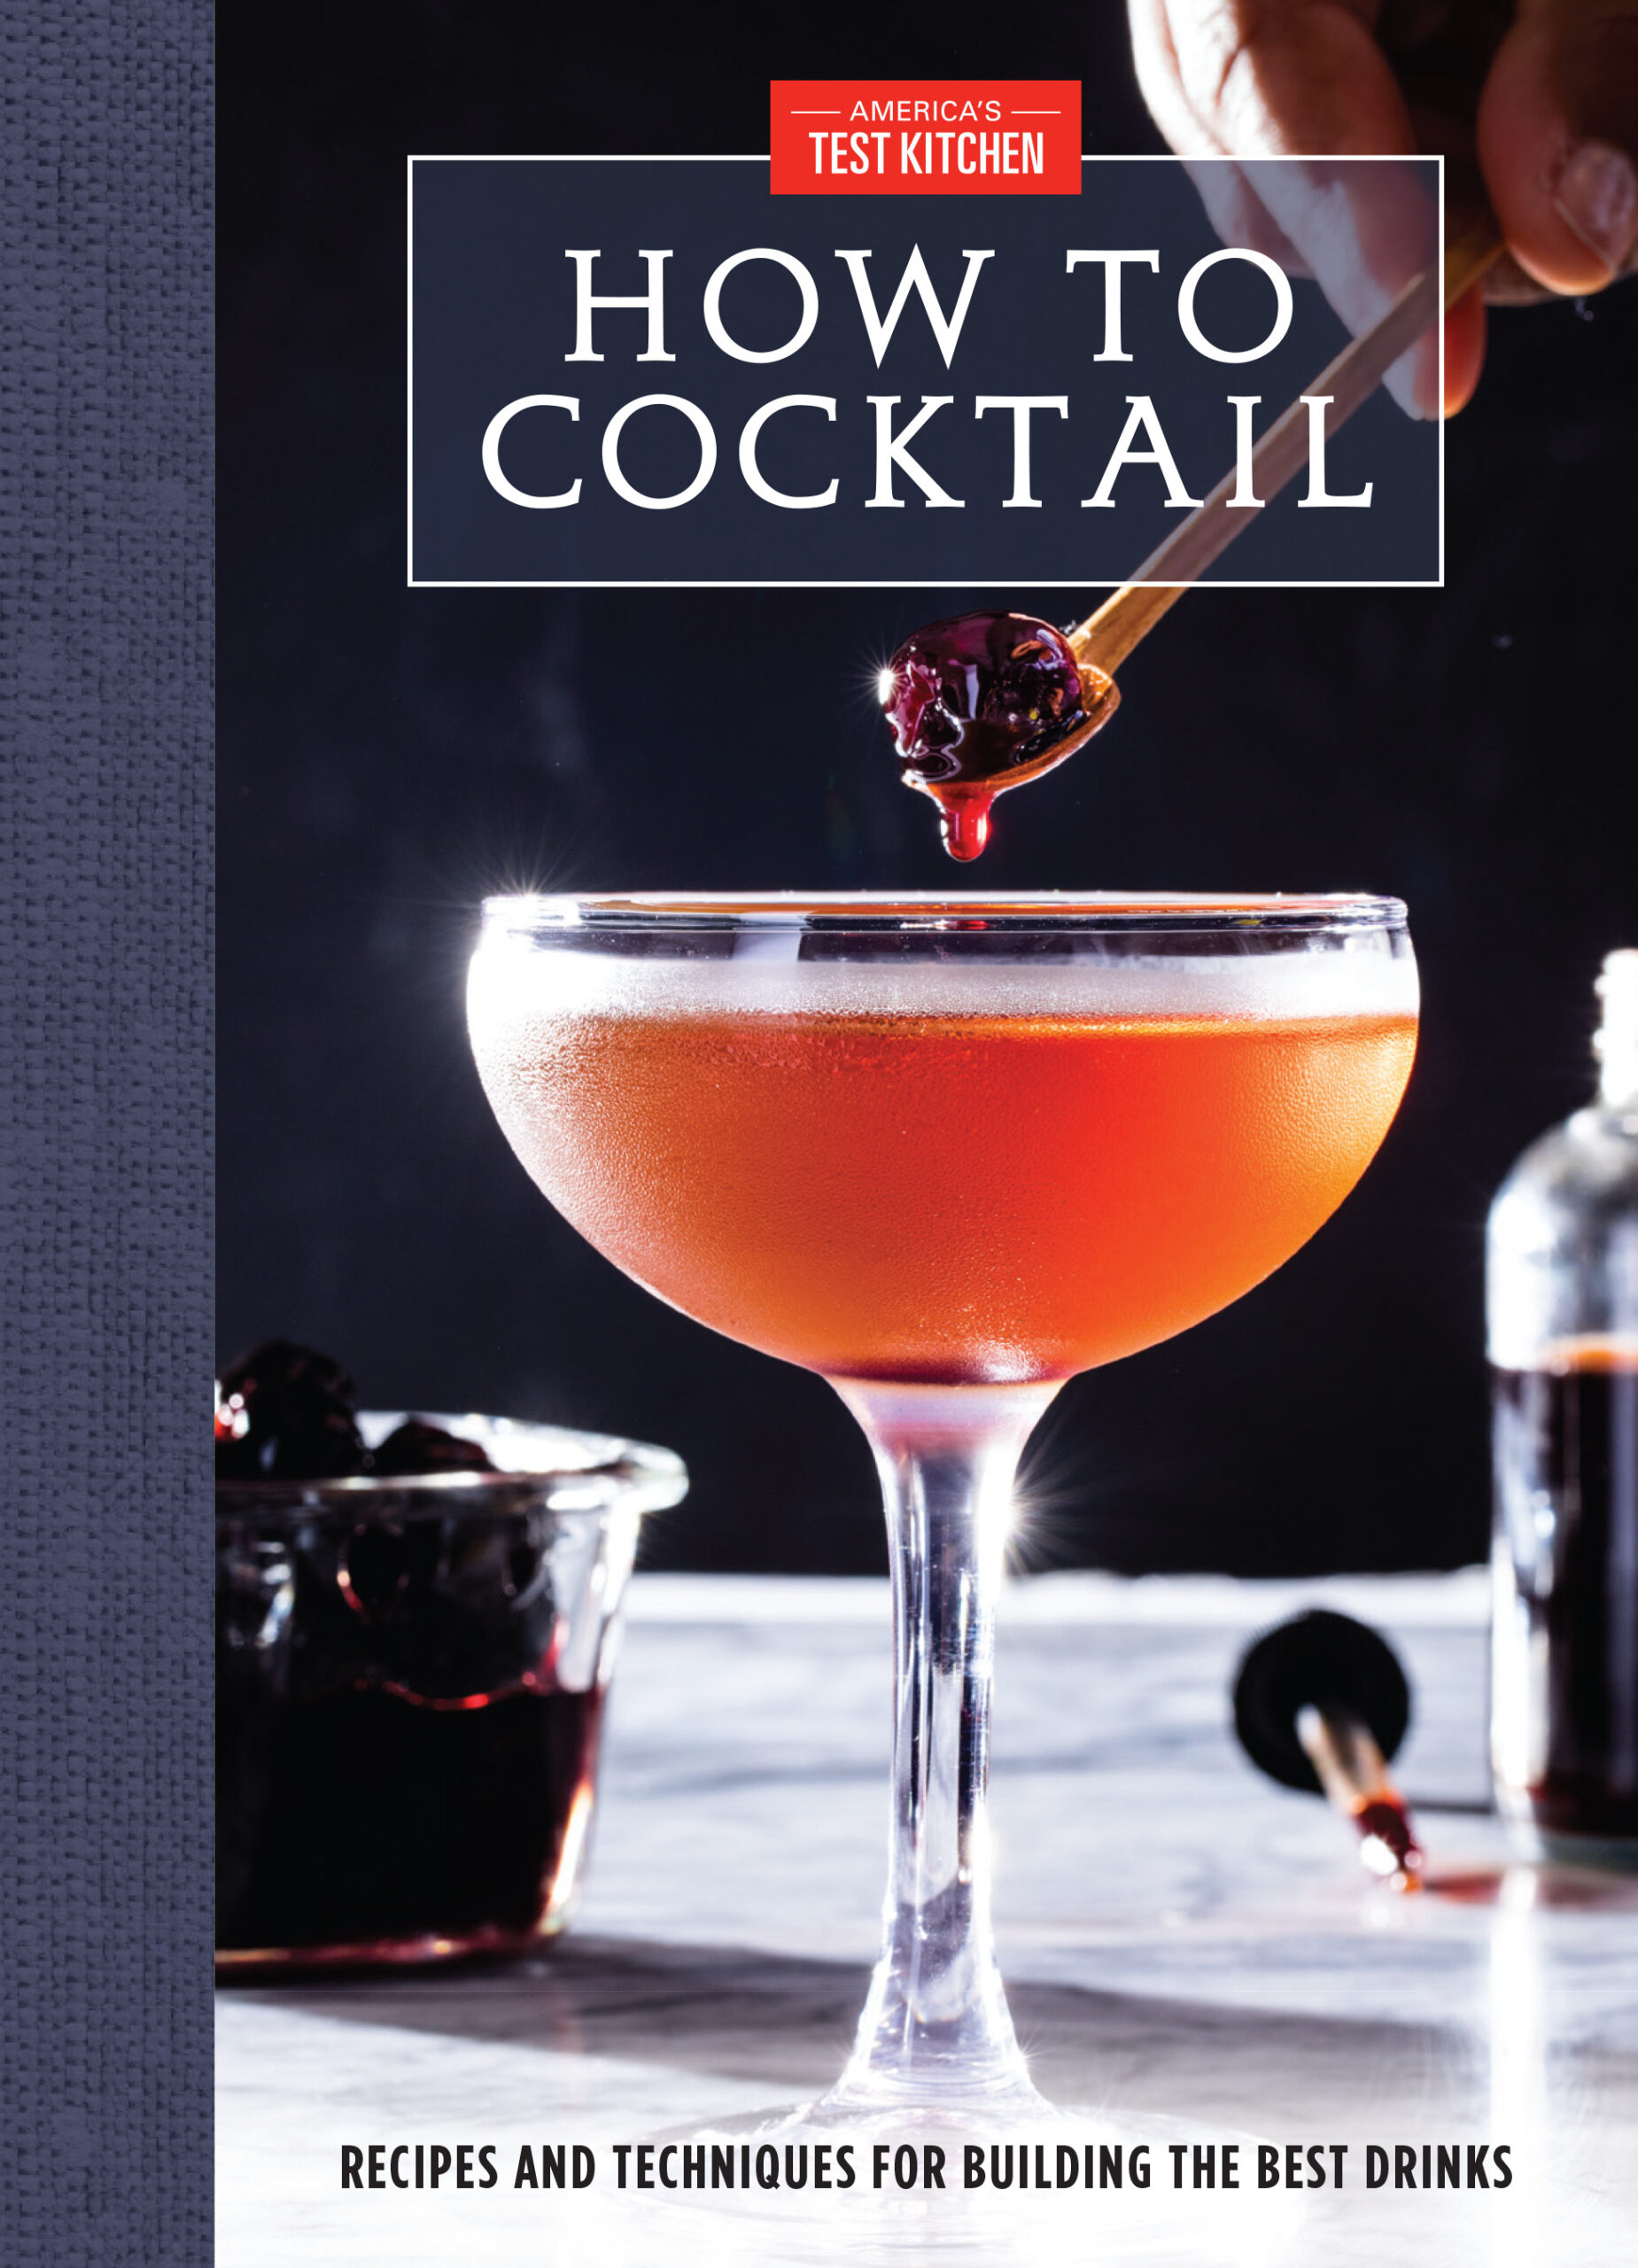 HOW TO COCKTAIL_books and cocktails